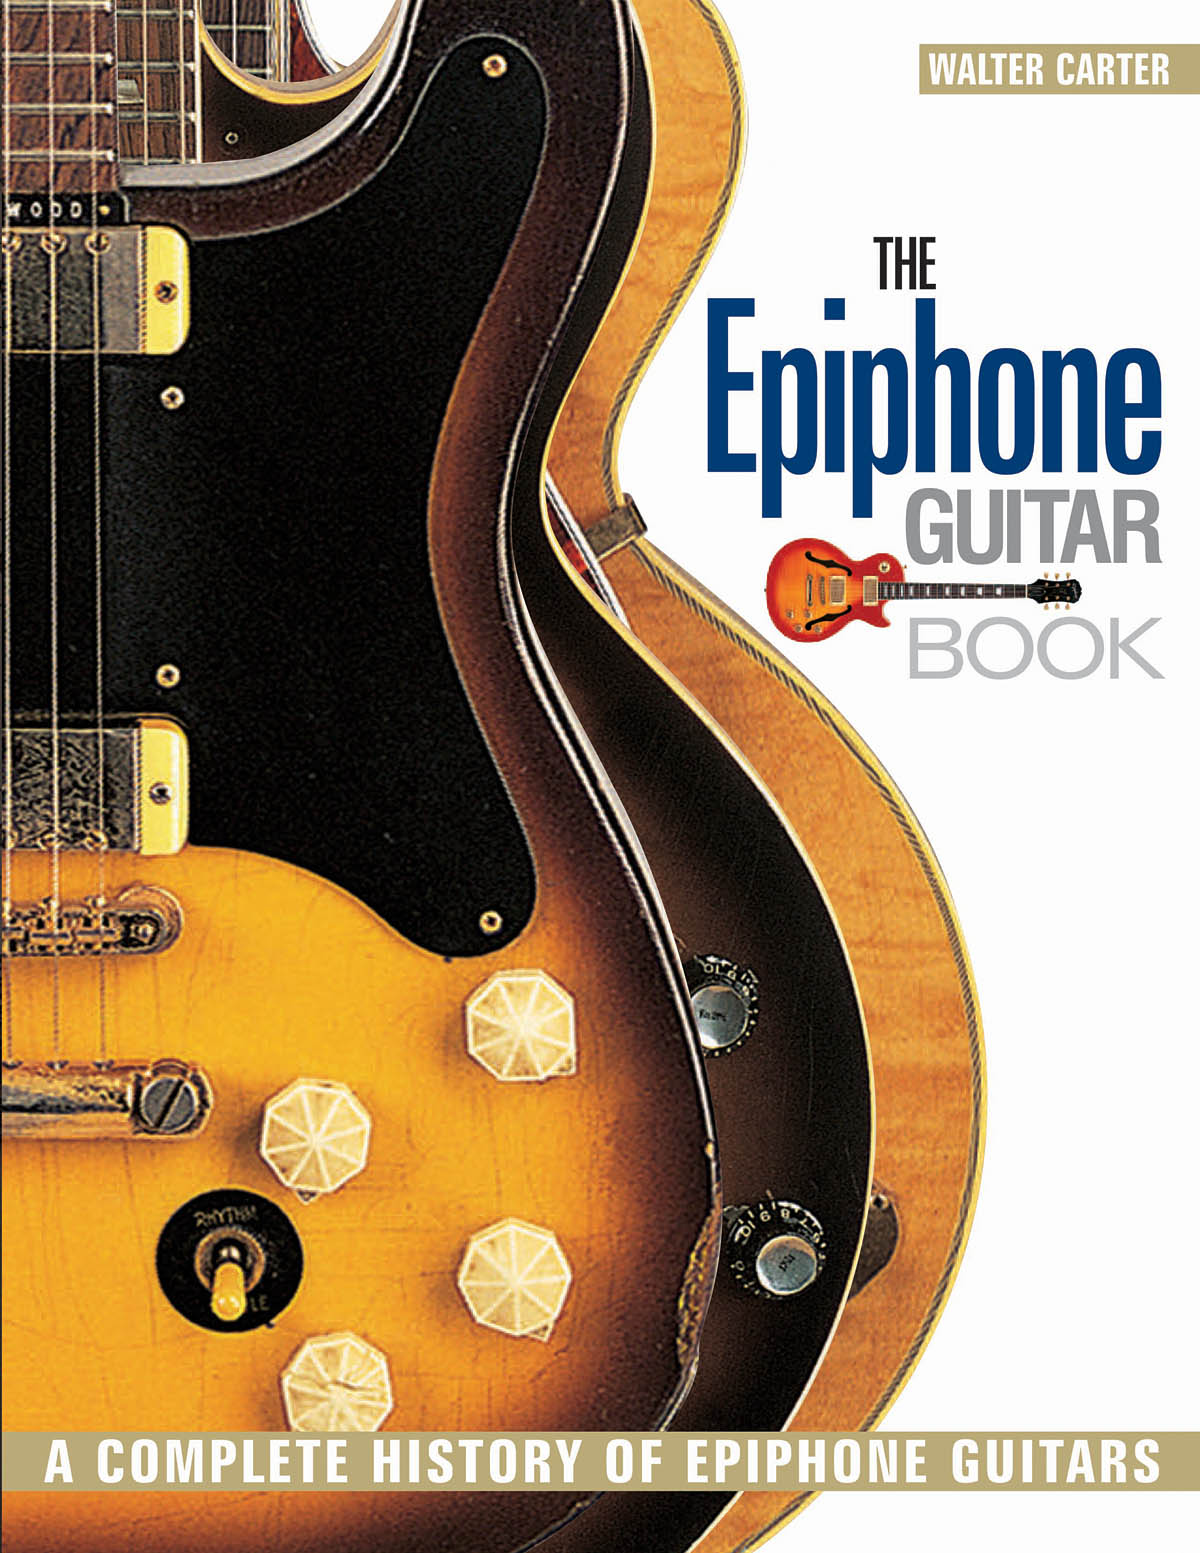 The Epiphone Guitar Book: Instrumental Reference